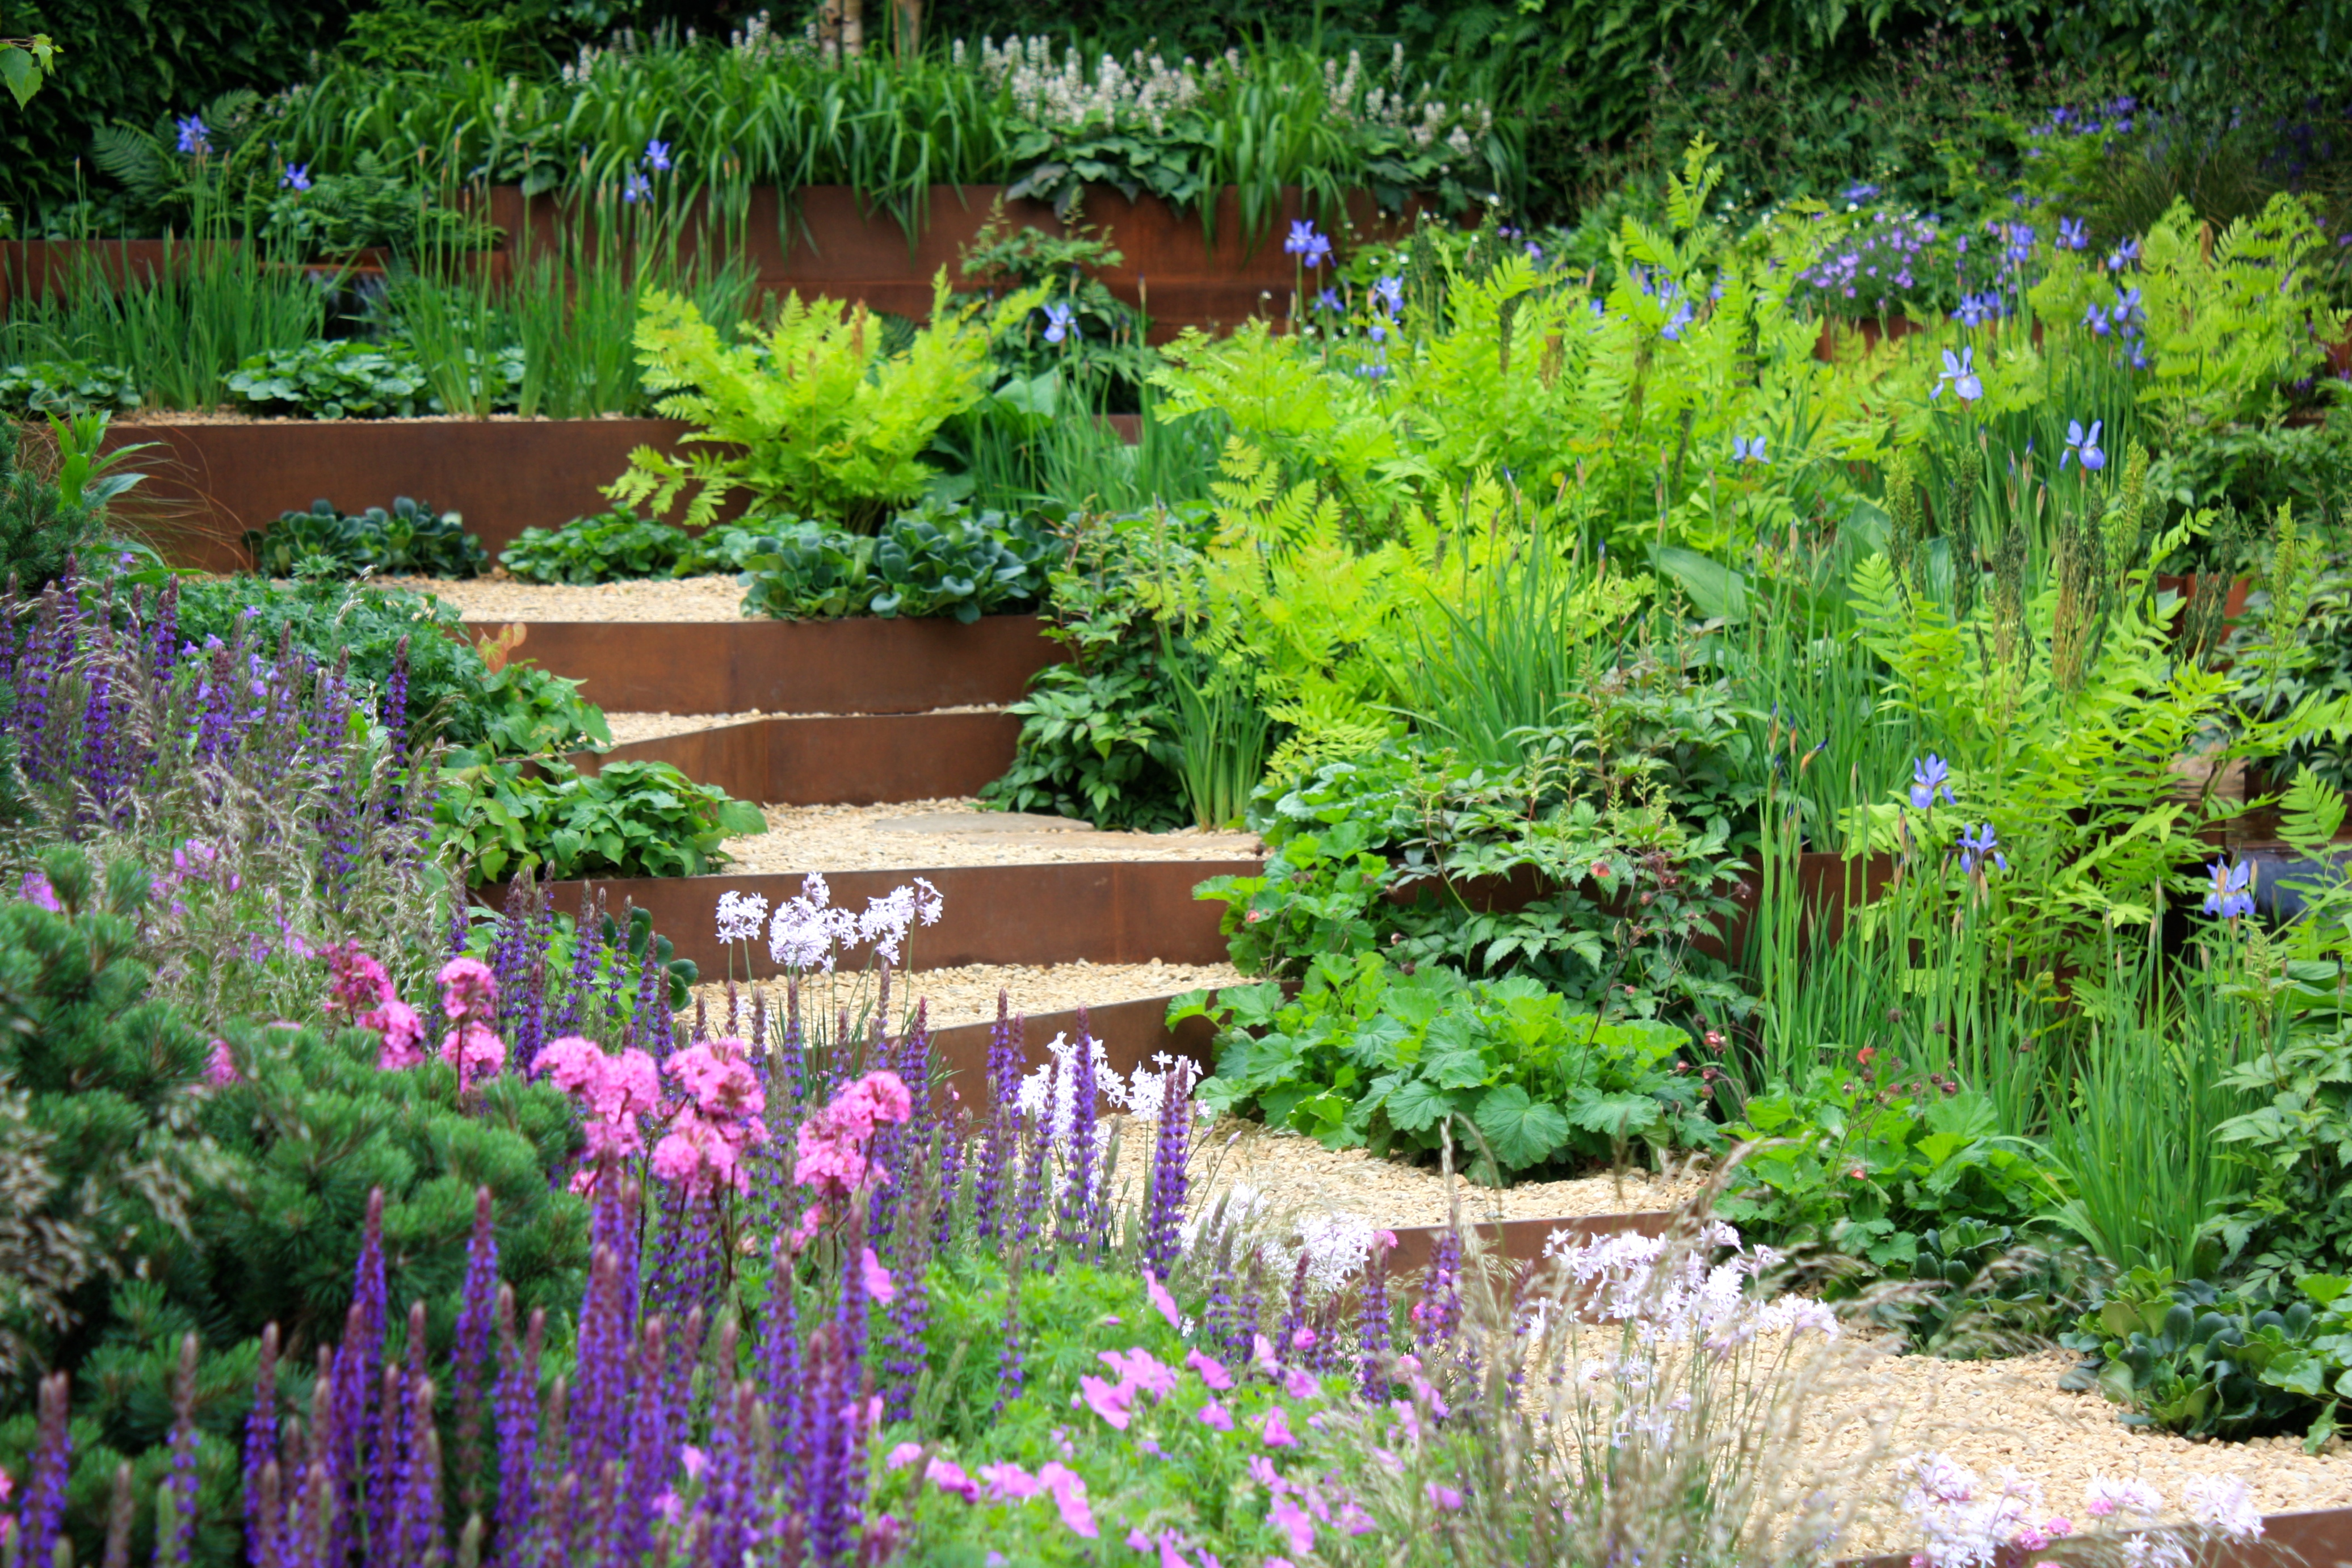 Chelsea flower show 2014 stars of the show a garden for for Garden design planting schemes